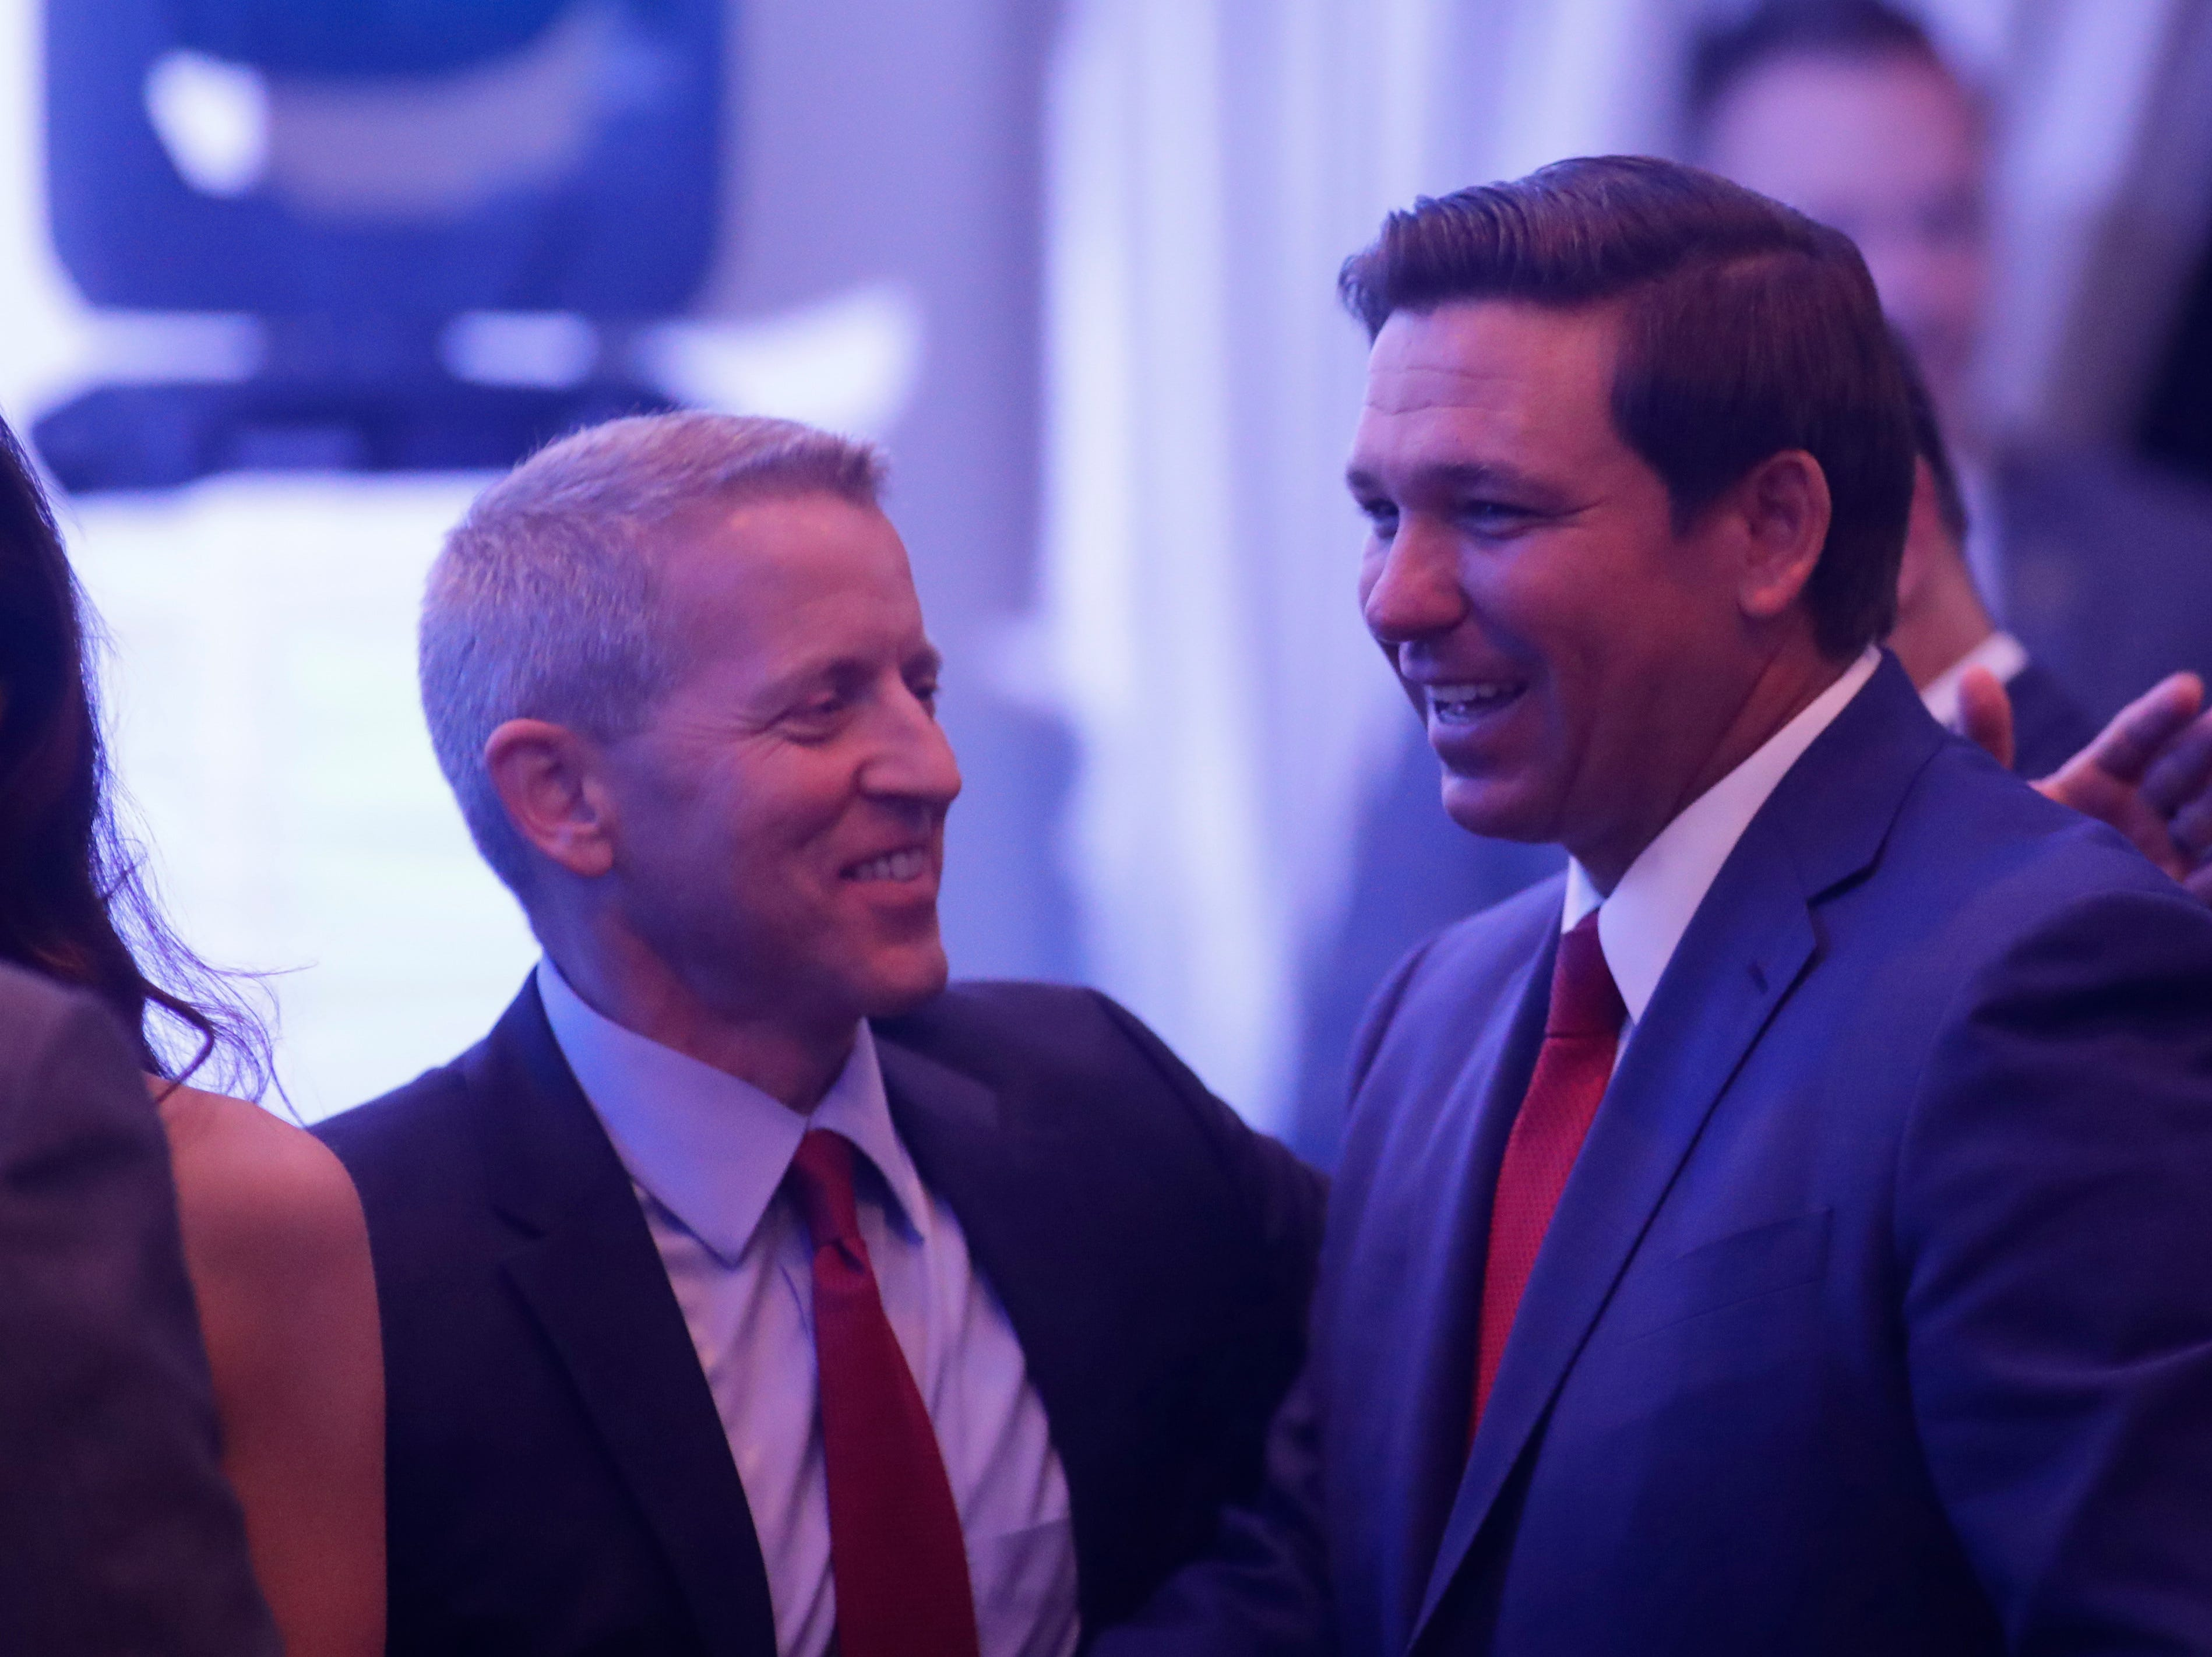 Gov. Ron DeSantis greets guests during the Bold Vision for a Bright Future: Thought Leaders Luncheon in the University Center Club at Florida State University Monday, Jan. 7, 2019.